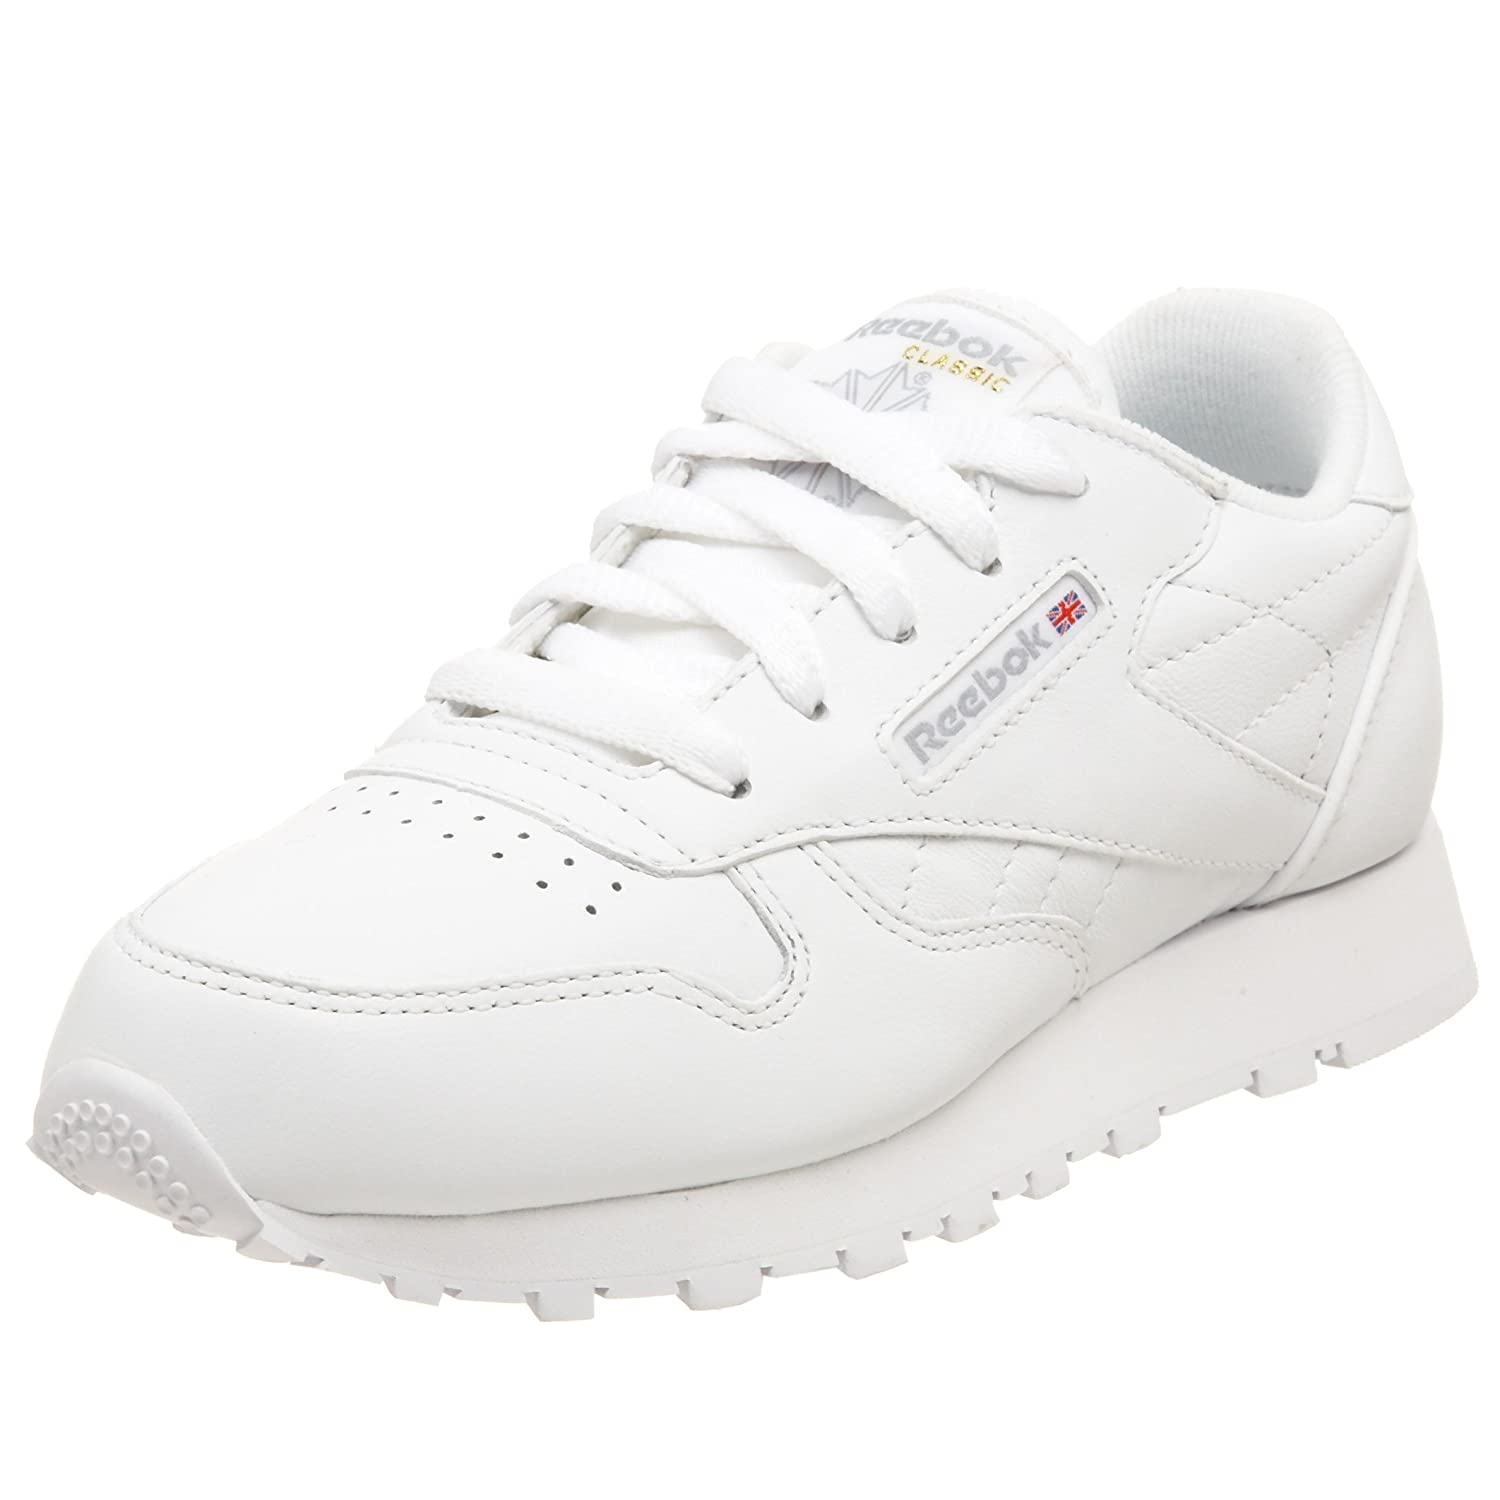 Reebok Klassiske Menns Trenere Amazon yD29SP3